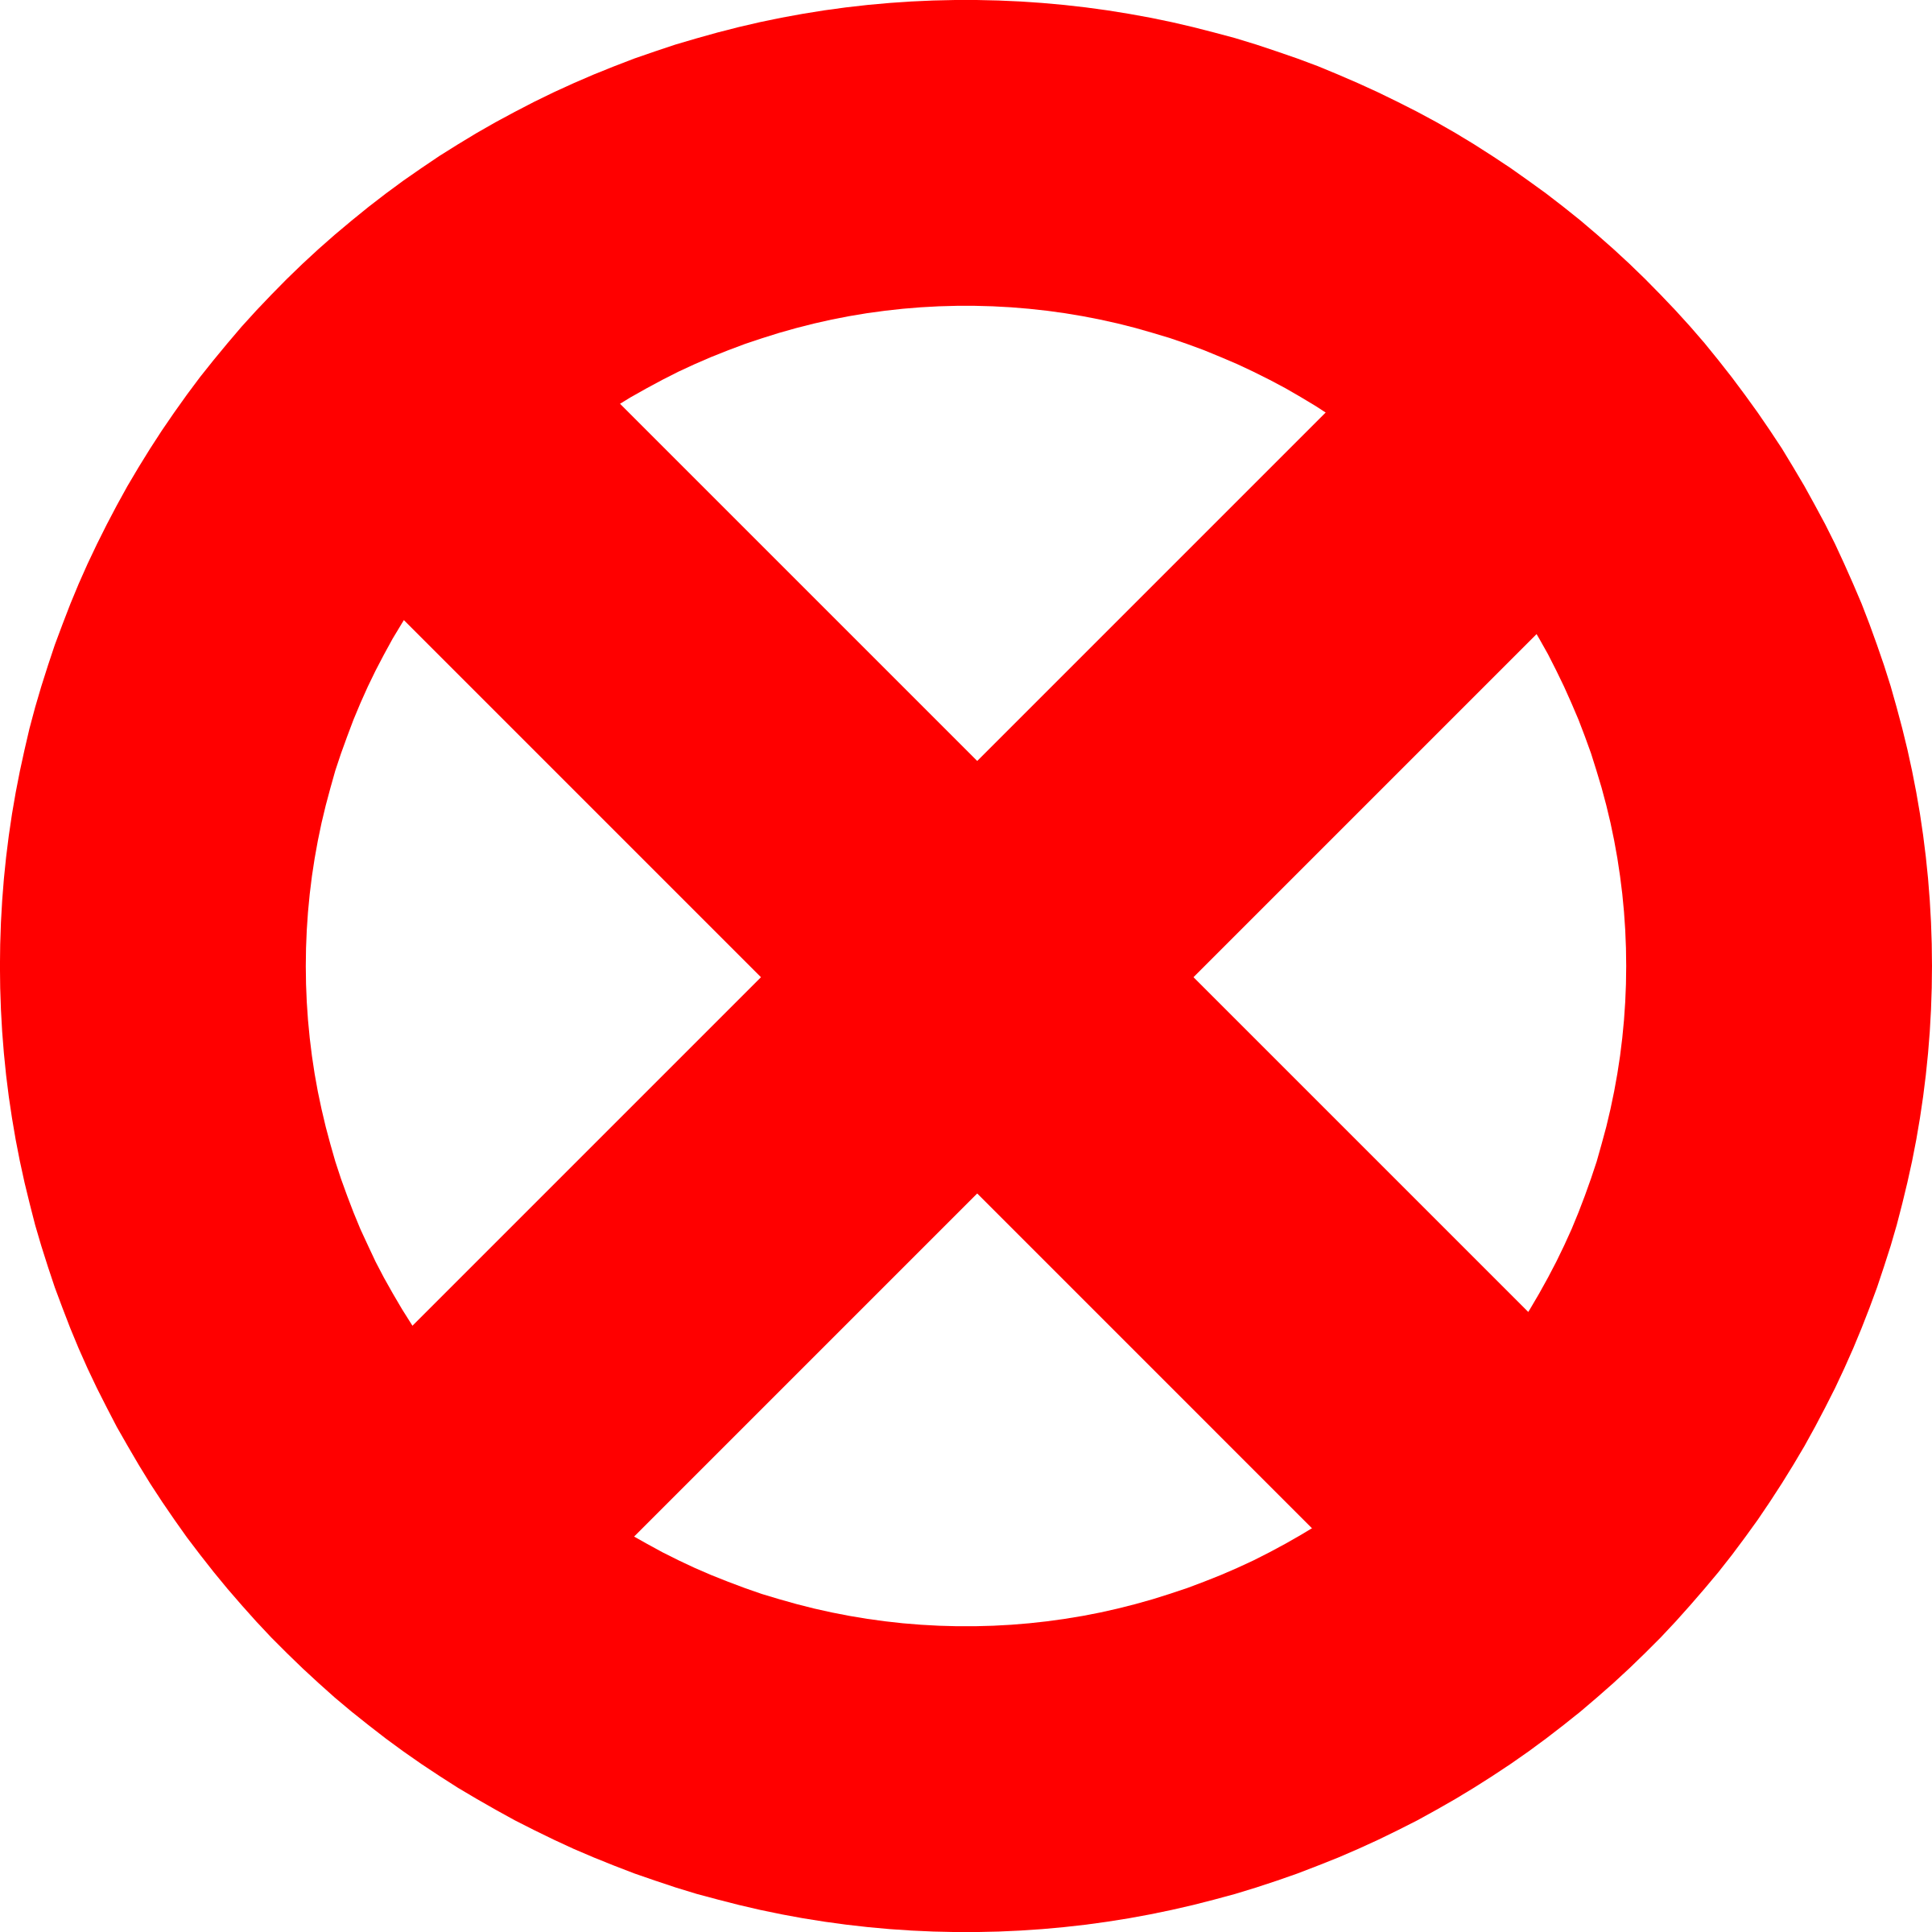 Prohibited Sign - Forbidden Sign - Abort Icons PNG - Free PNG and ...